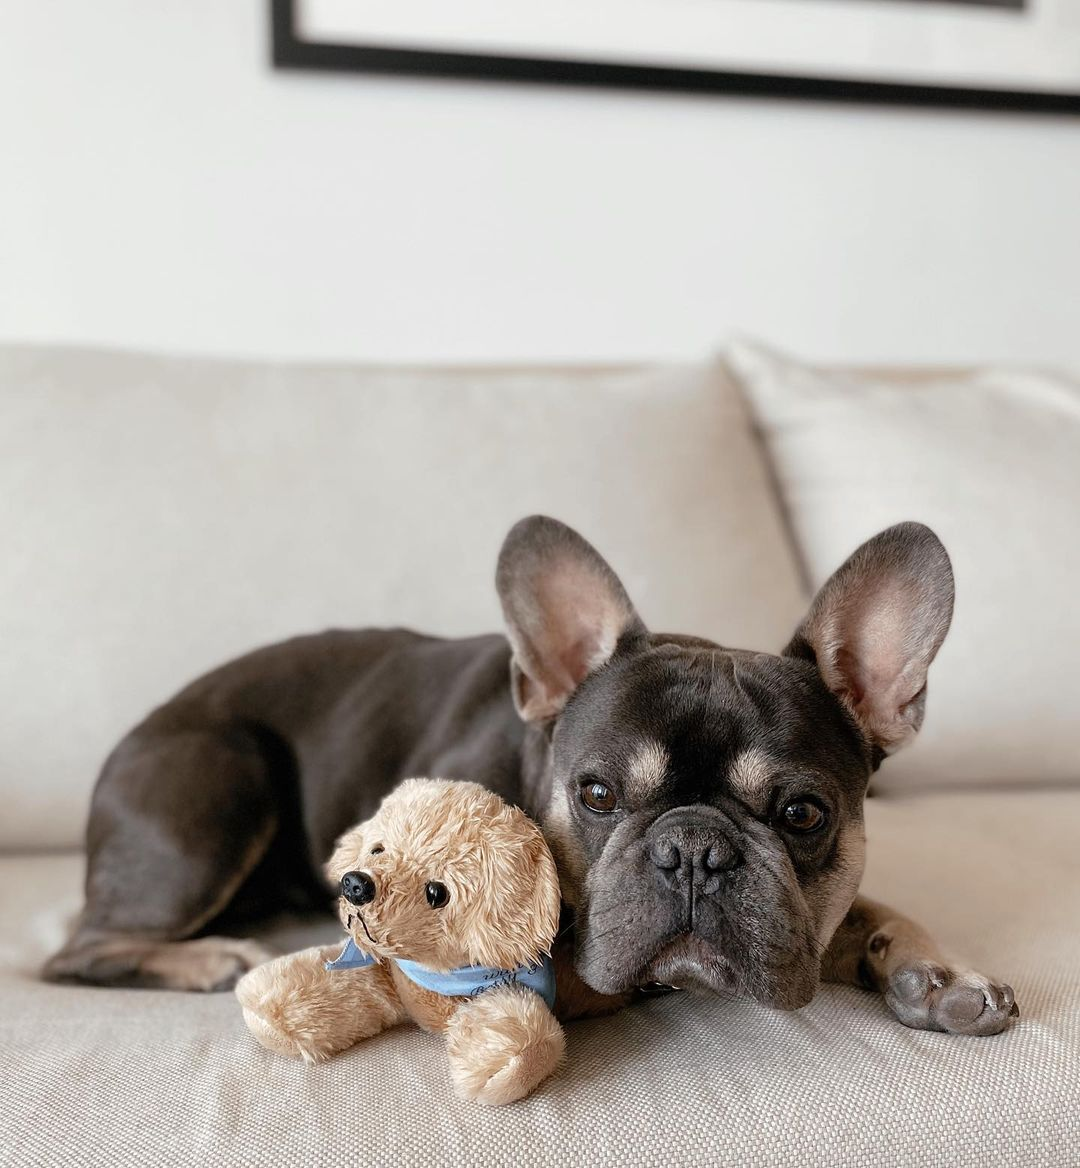 a dog lying down with a stuffed toy dog